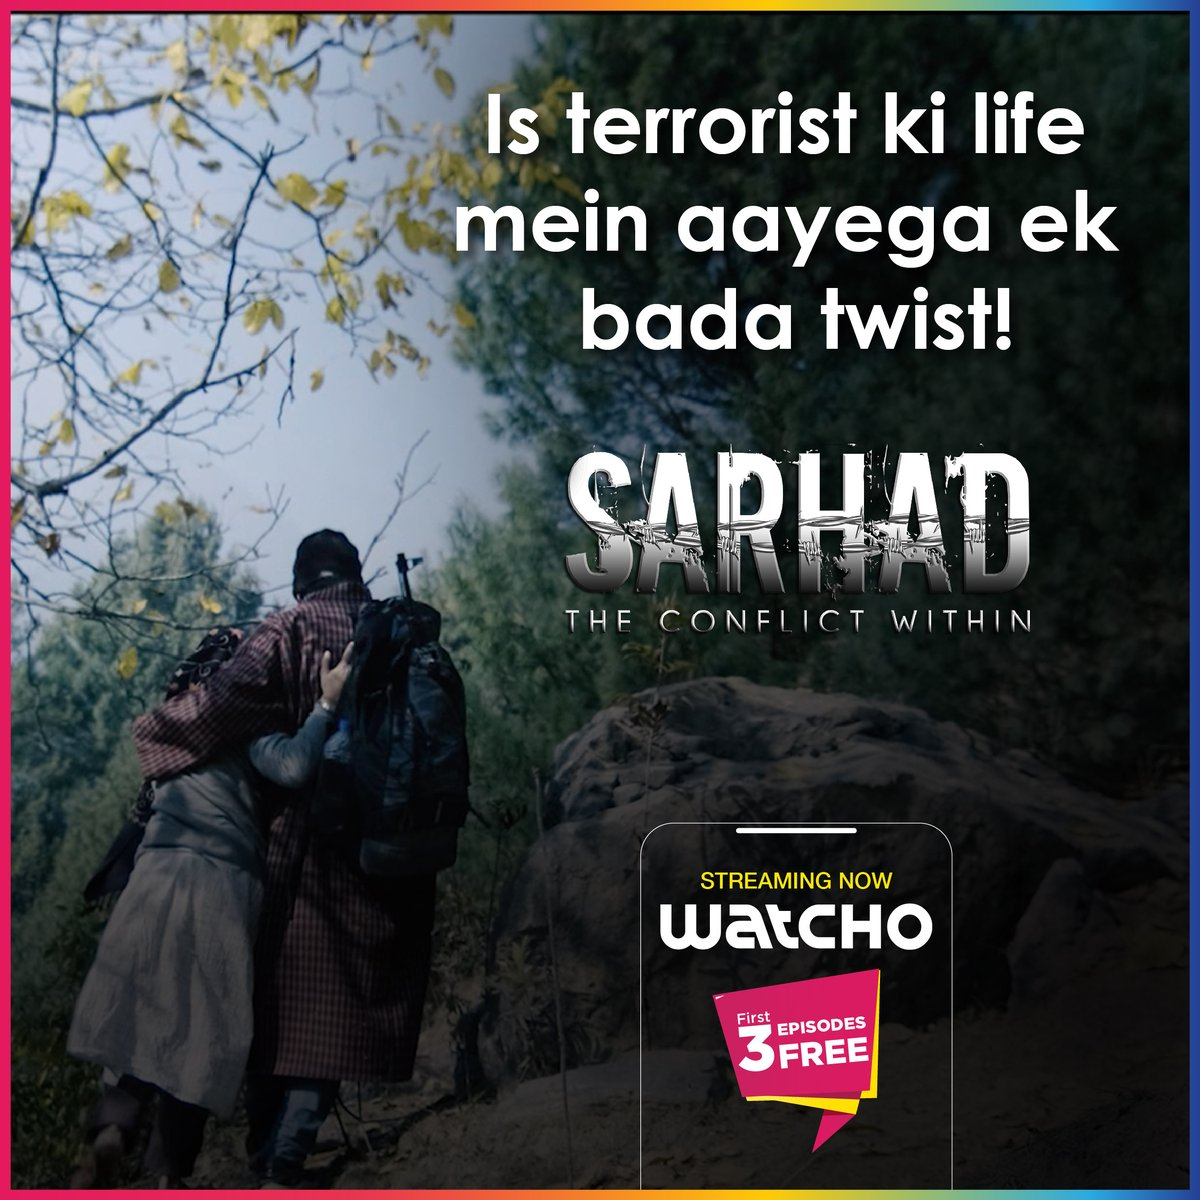 Drama, mystery, thrill, action...sab hai yaha!   Watch Sarhad, streaming now on Watcho.  #LetsWatcho #Watcho #patriotism  #MustWatch  #HappyRepublicDay #Nationalism  #love #patriots #national #ProudIndian   @DishTV_India @officiald2h @PerceptPictures